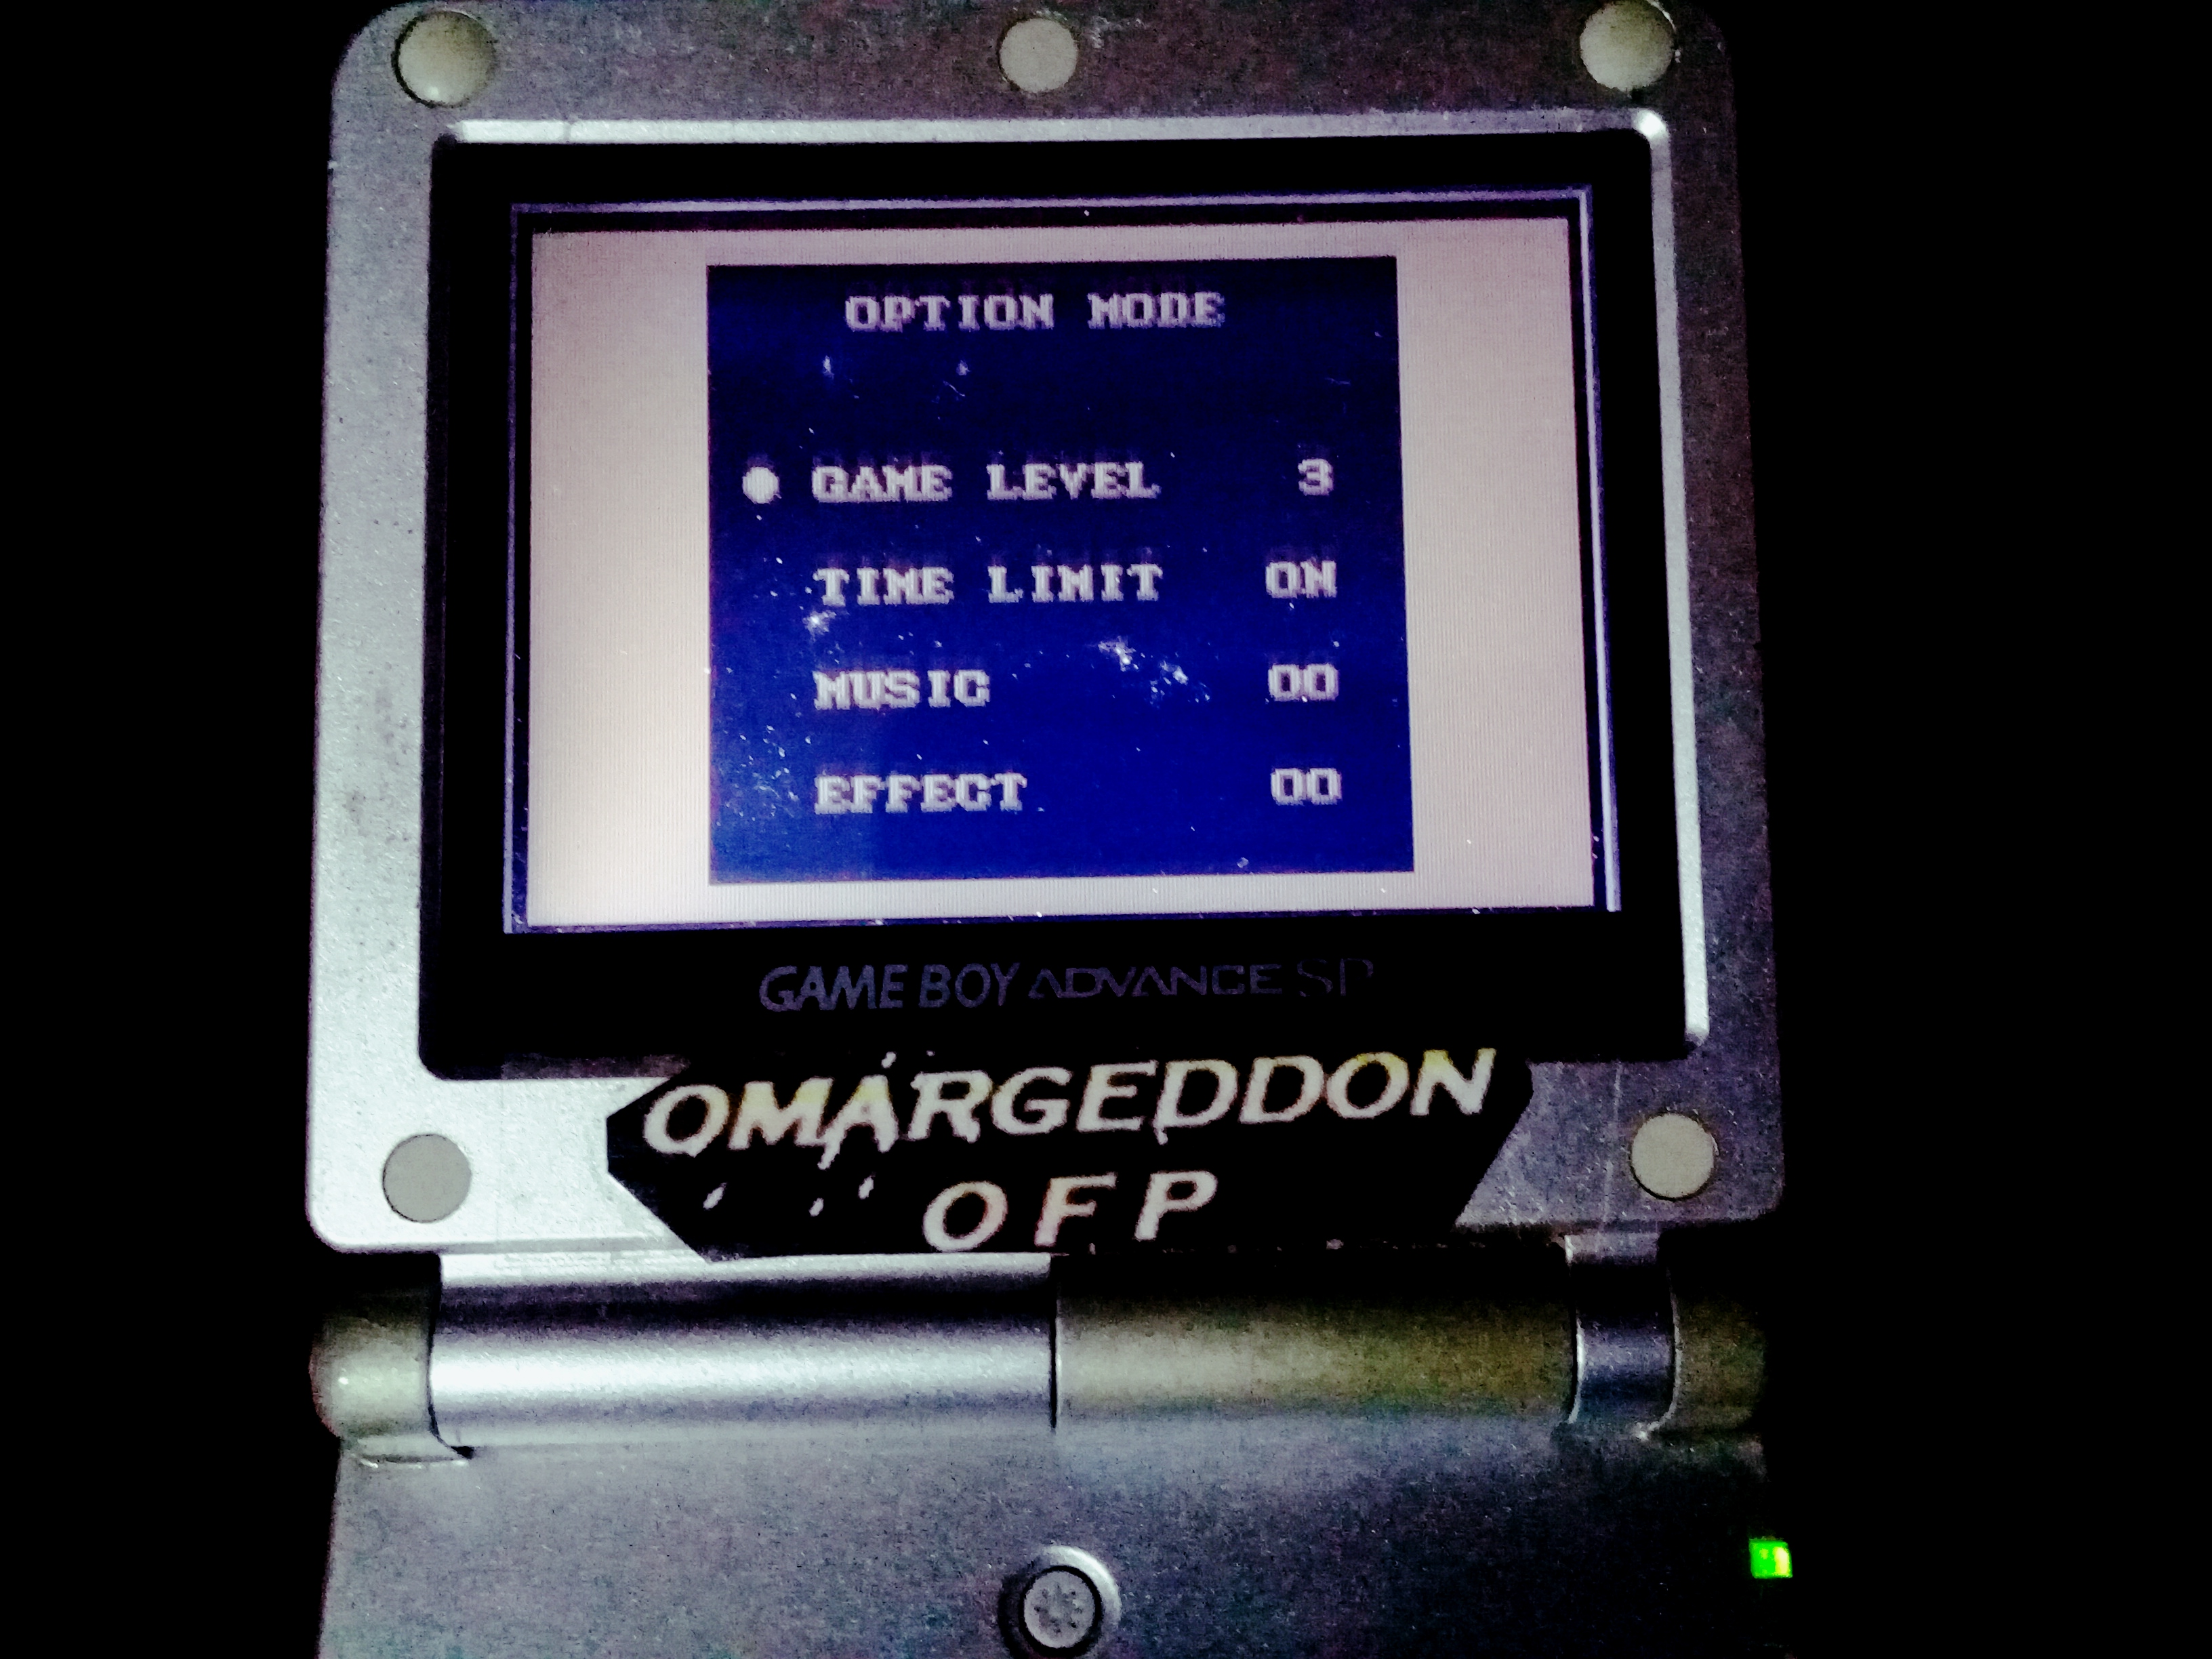 omargeddon: Street Fighter II [Game Level 3] (Game Boy) 429,700 points on 2020-07-26 01:09:26